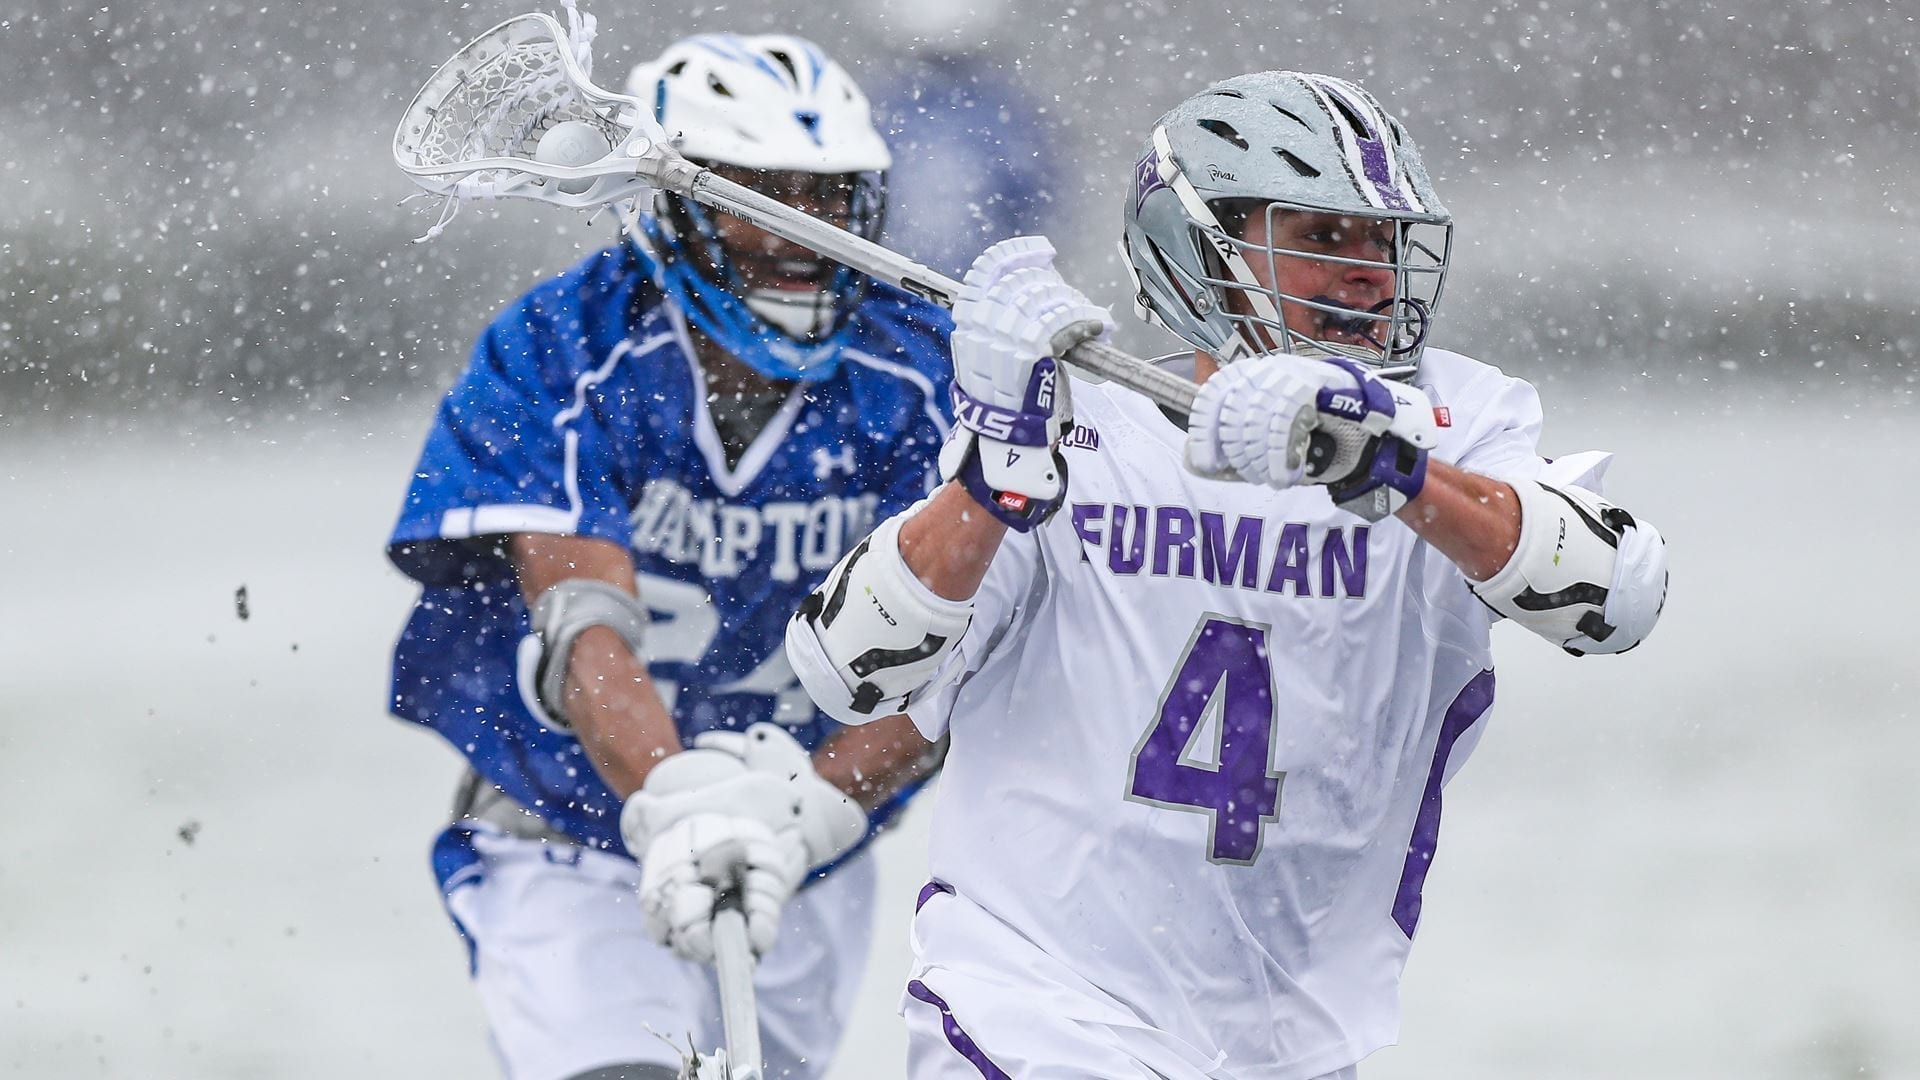 men's college lacrosse 2020 week 2 top moments and highlights furman hampton ncaa division i lacrosse college